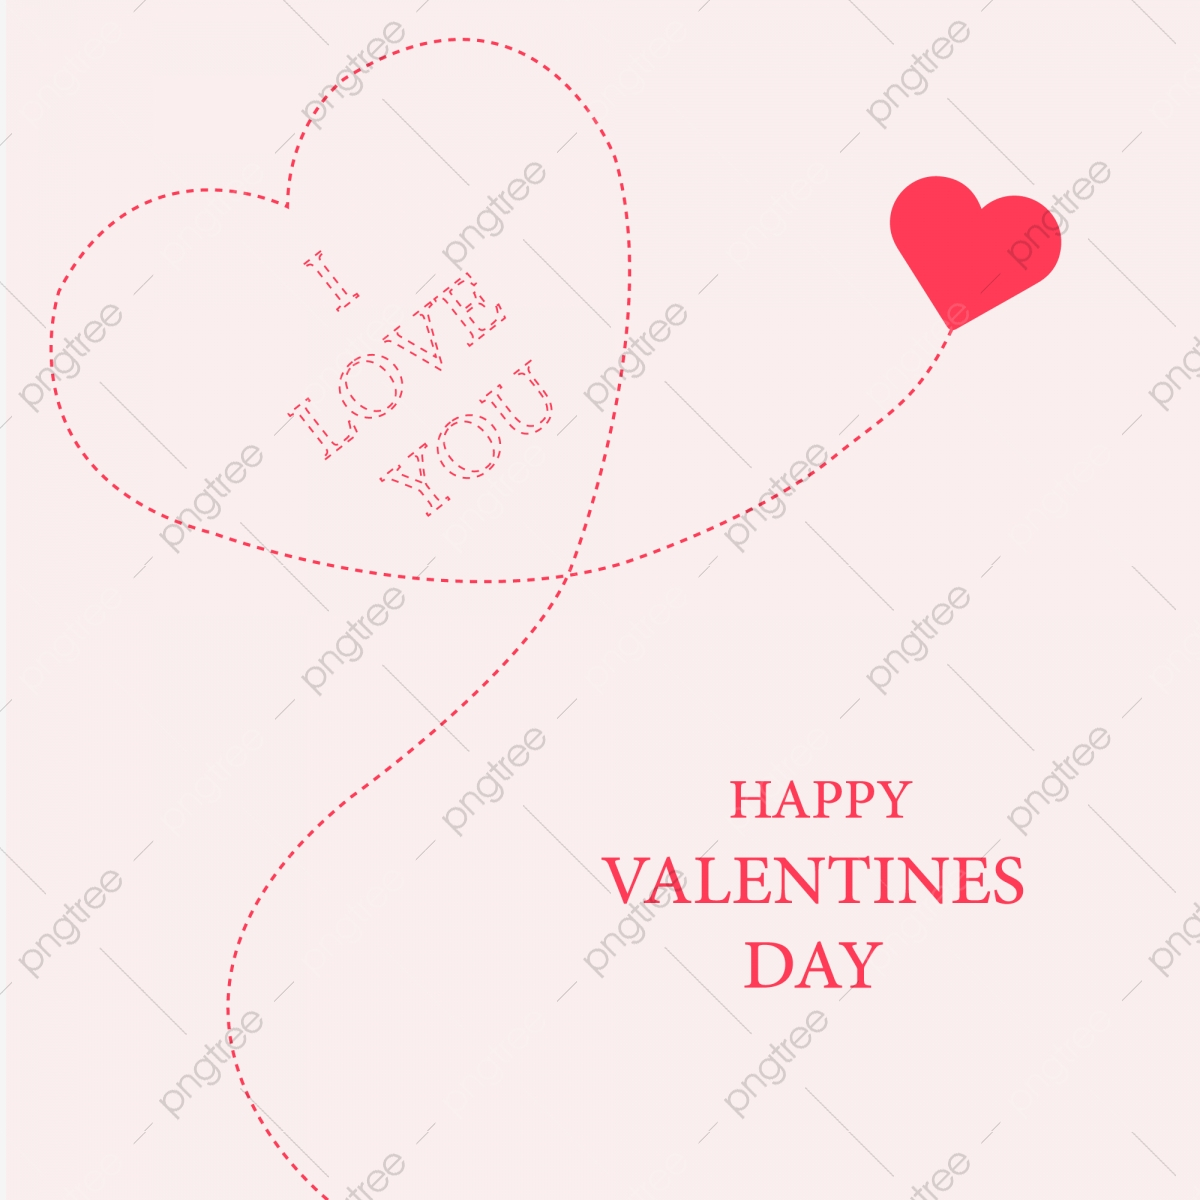 happy valentines day share=2